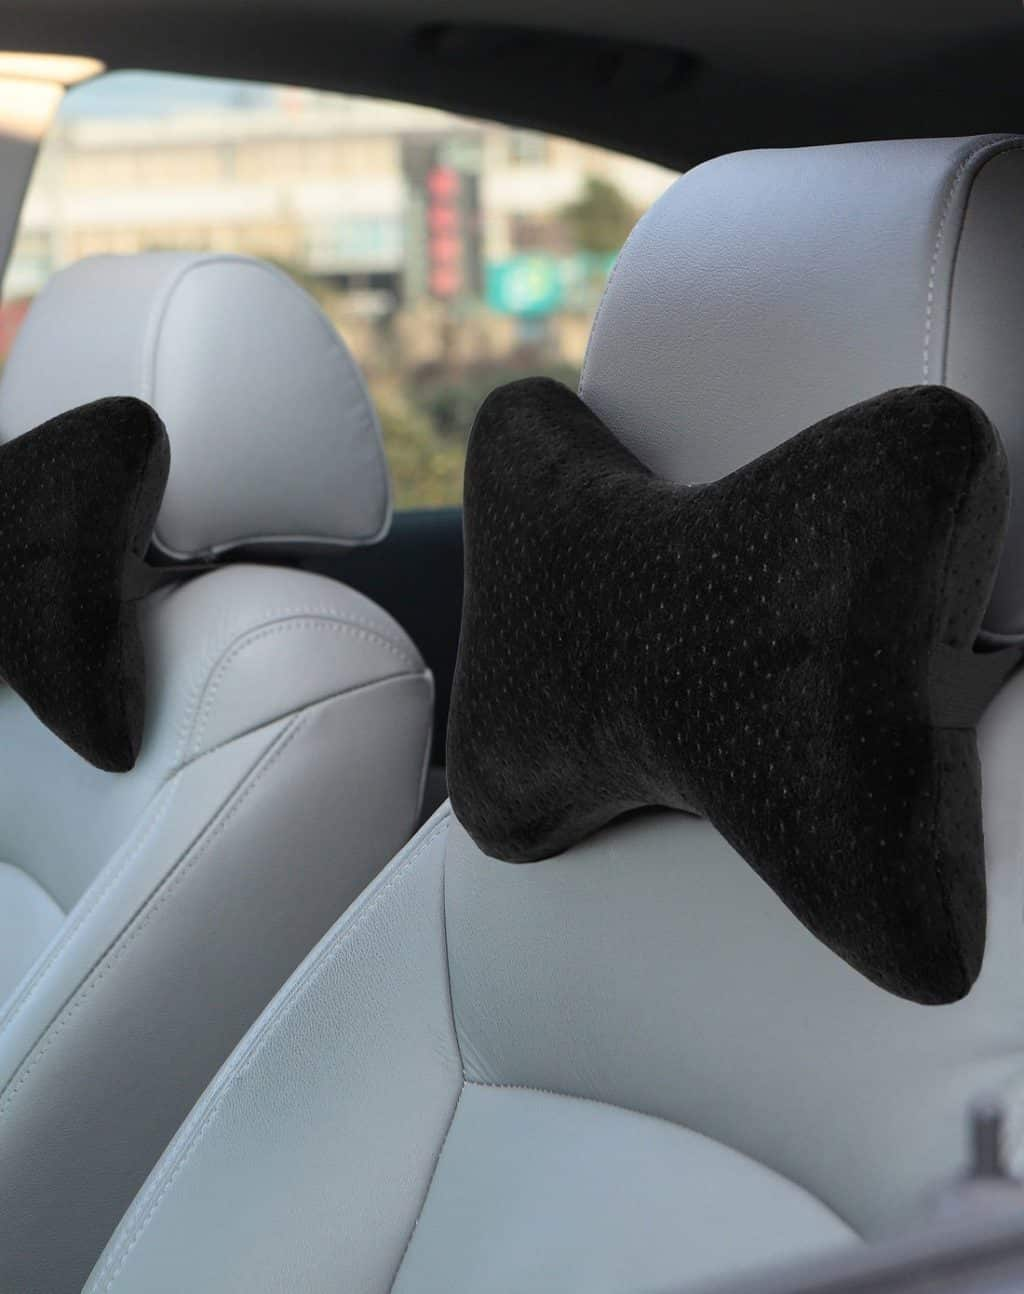 aeris car neck pillow for head support